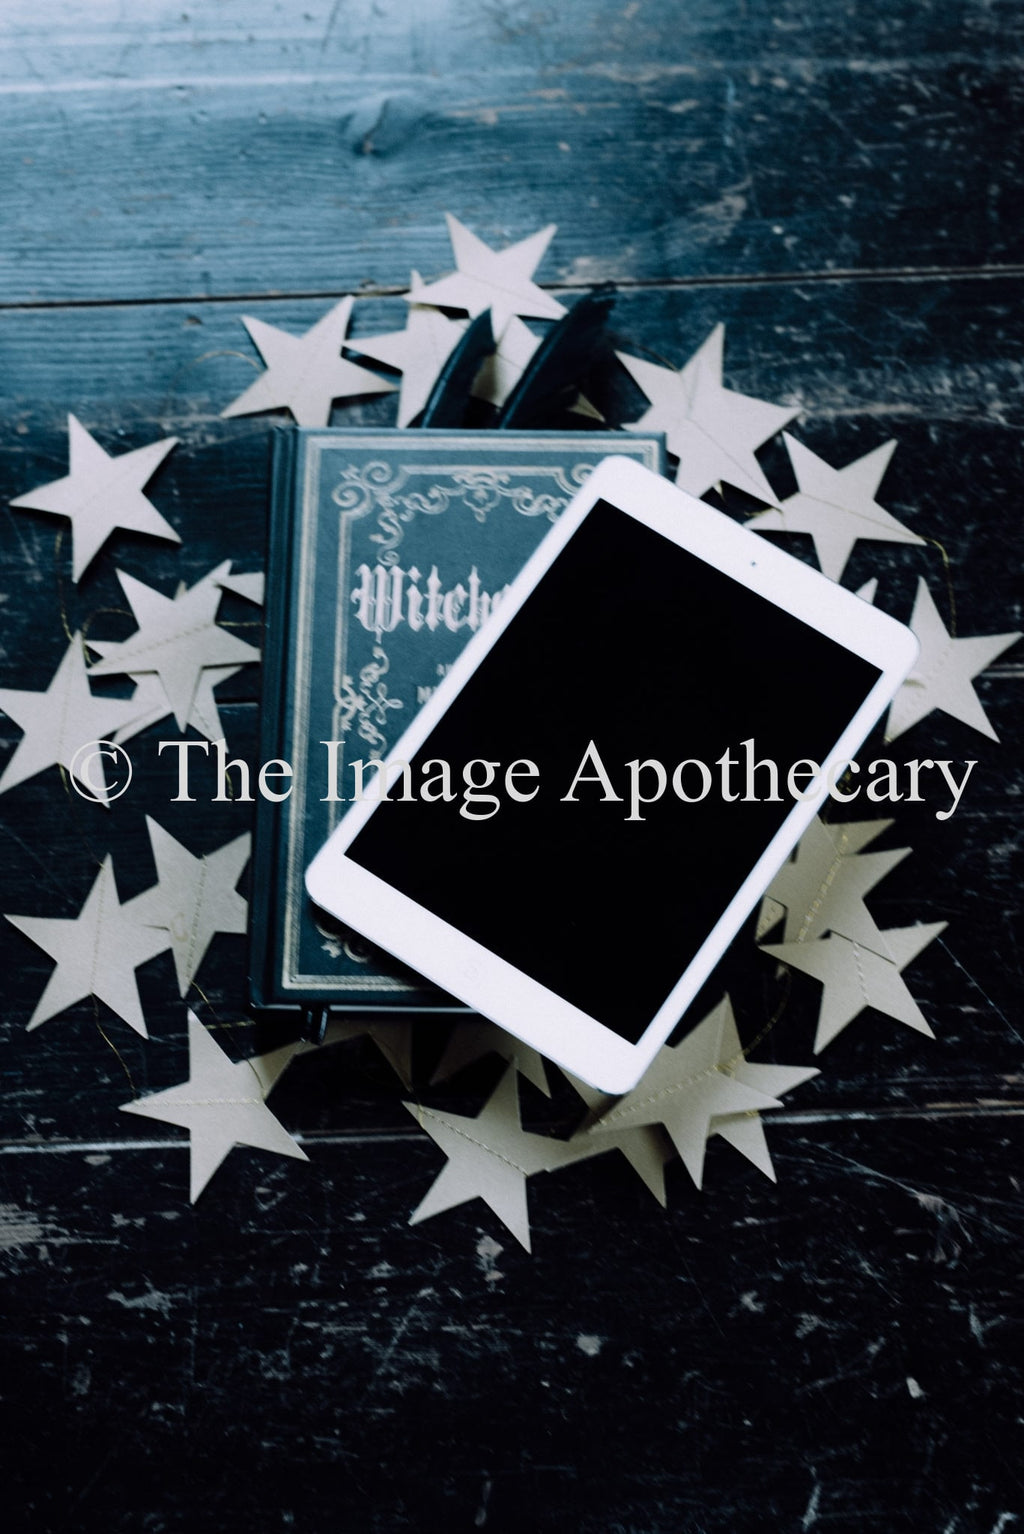 The Image Apothecary_4157M - Stock Photography by The Image Apothecary